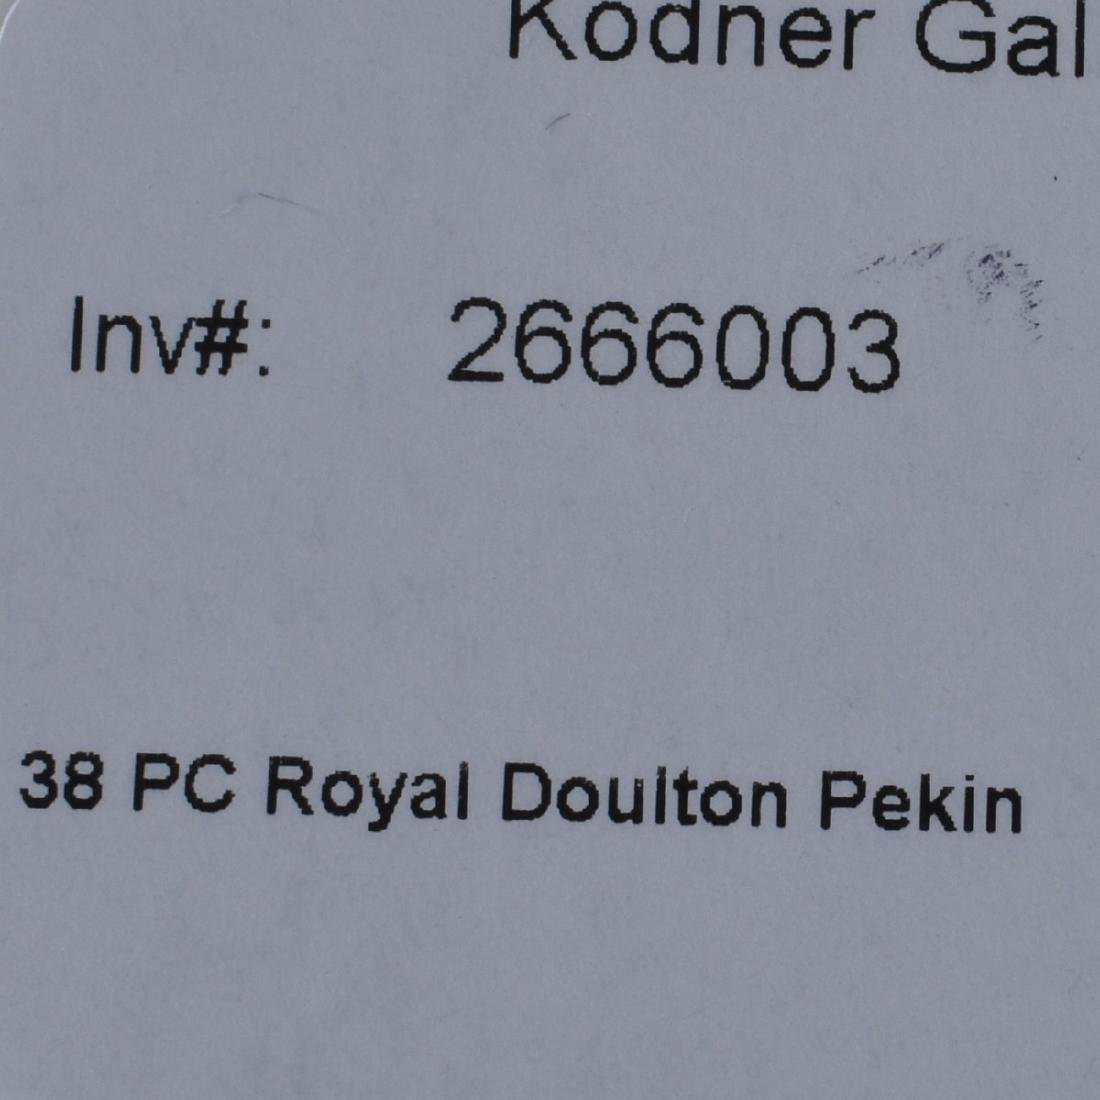 38 PC Royal Doulton Pekin - 7